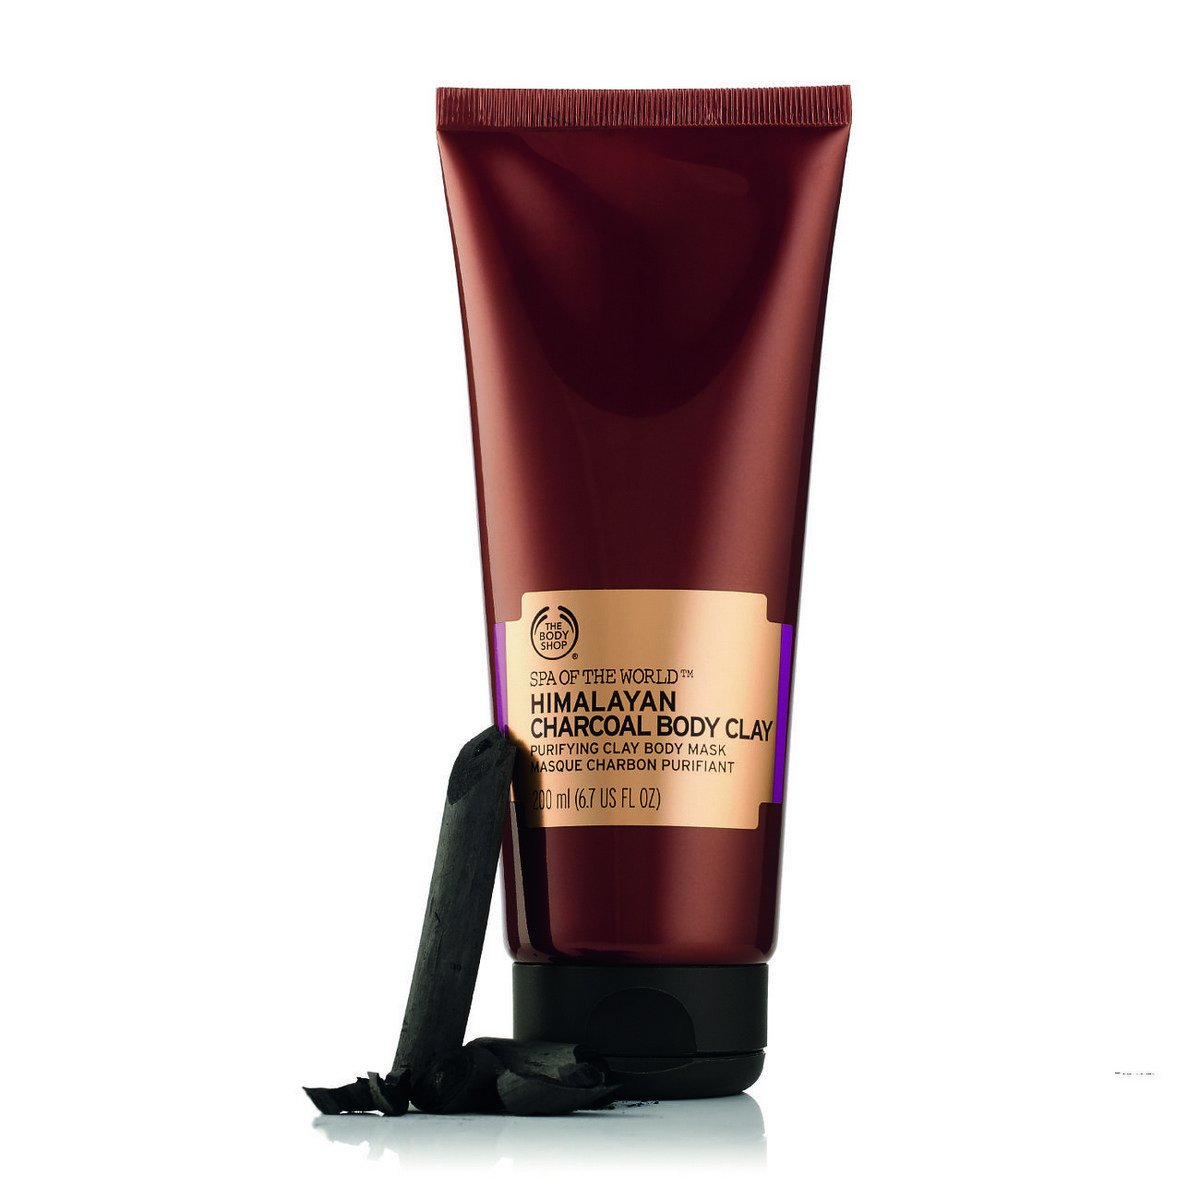 The Body Shop Himalayan Charcoal Purifying Clay Body Mask The Body Shop Canada